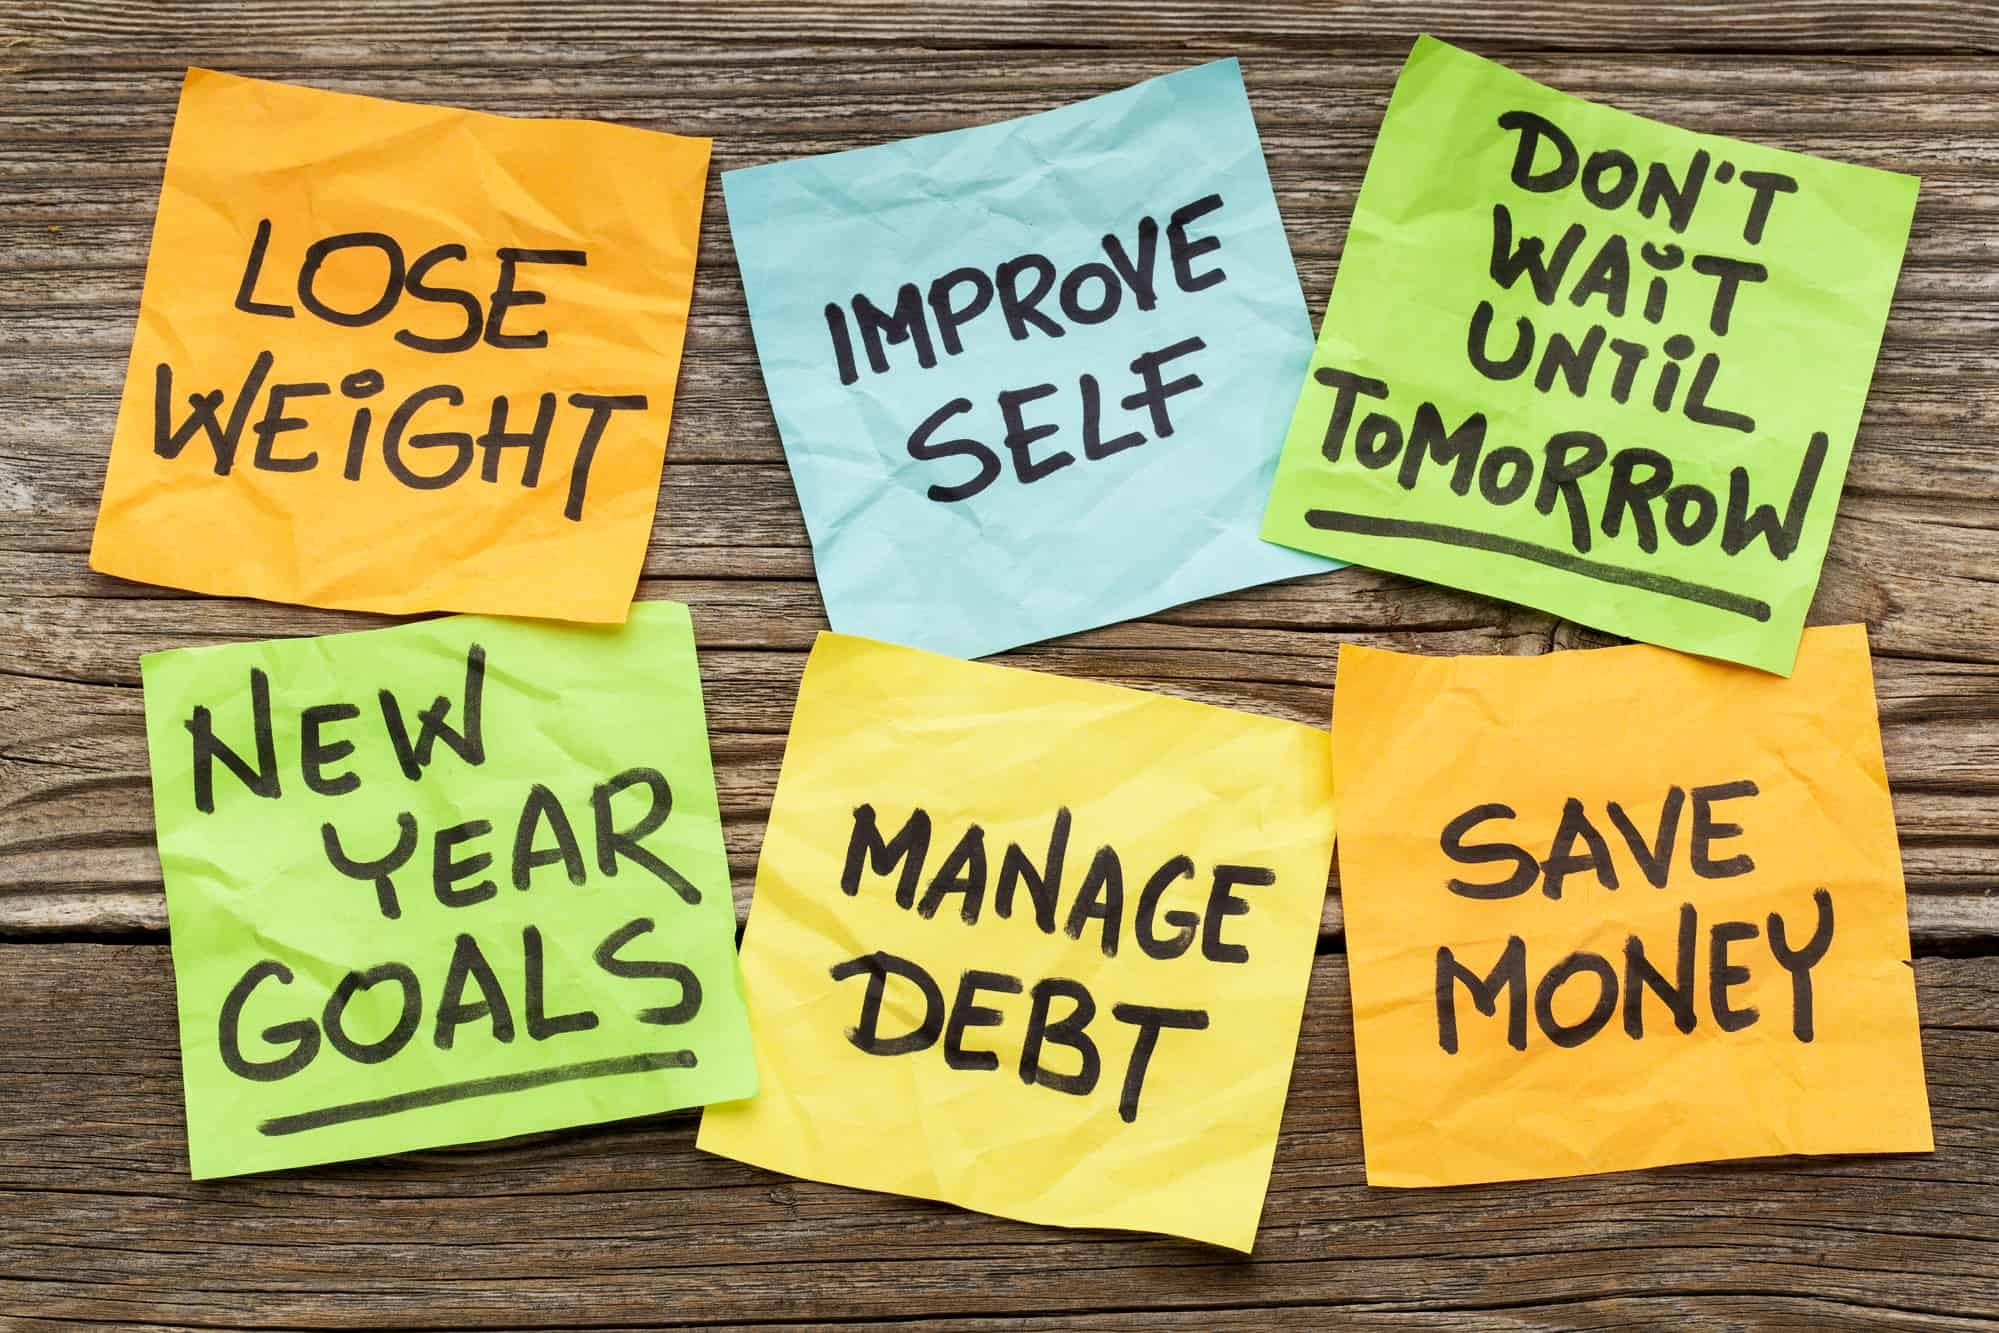 With the New Year in full swing, here are five steps that you can take right now to improve your financial status and get your money situation under control.